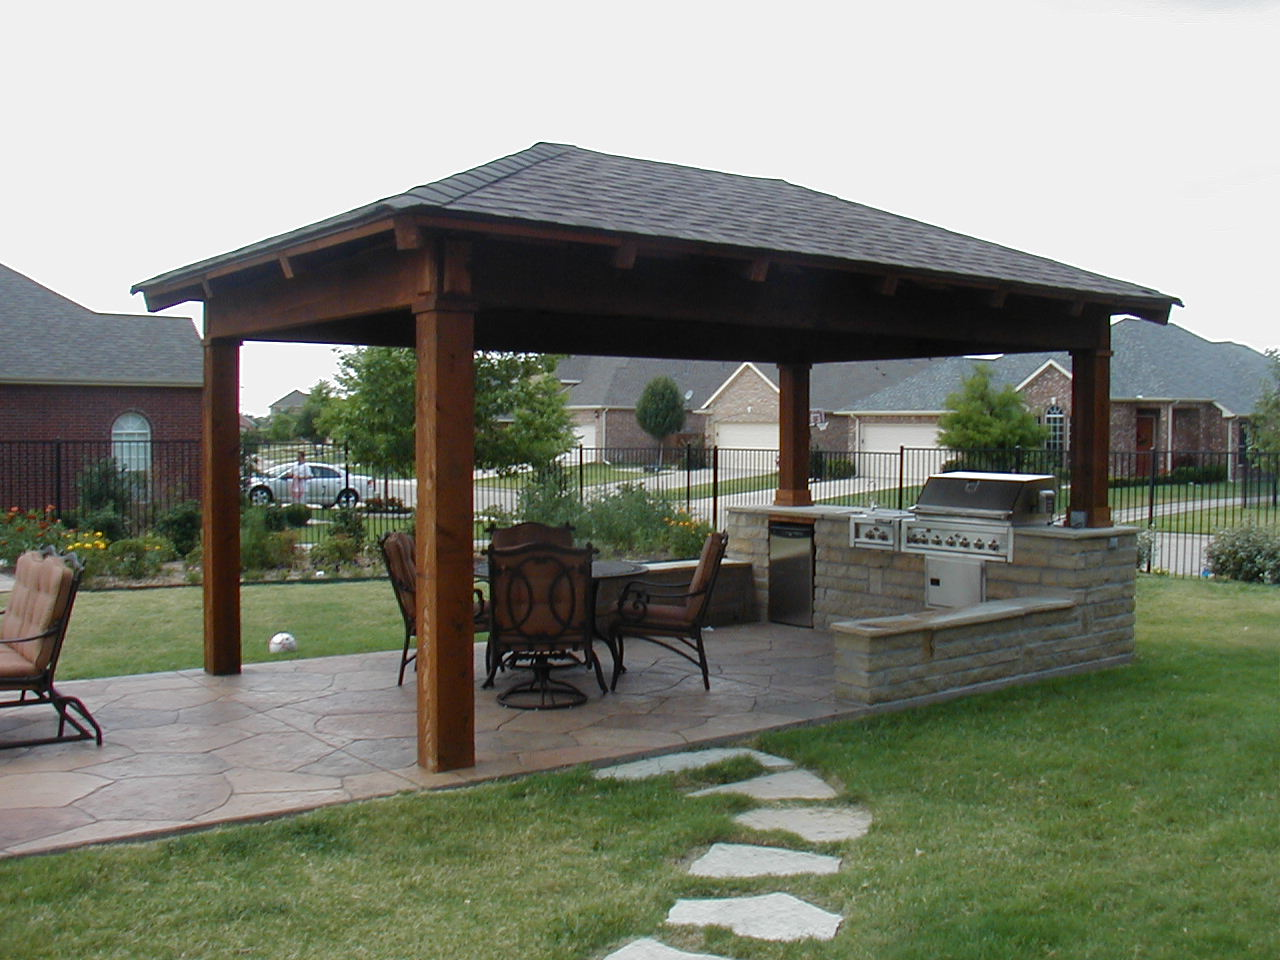 Outdoor Pavilion Plans That Offer a Pleasant Relaxing Time at Your on backyard pavilion ideas, outdoor pavilion ideas, rustic outdoor kitchen ideas,